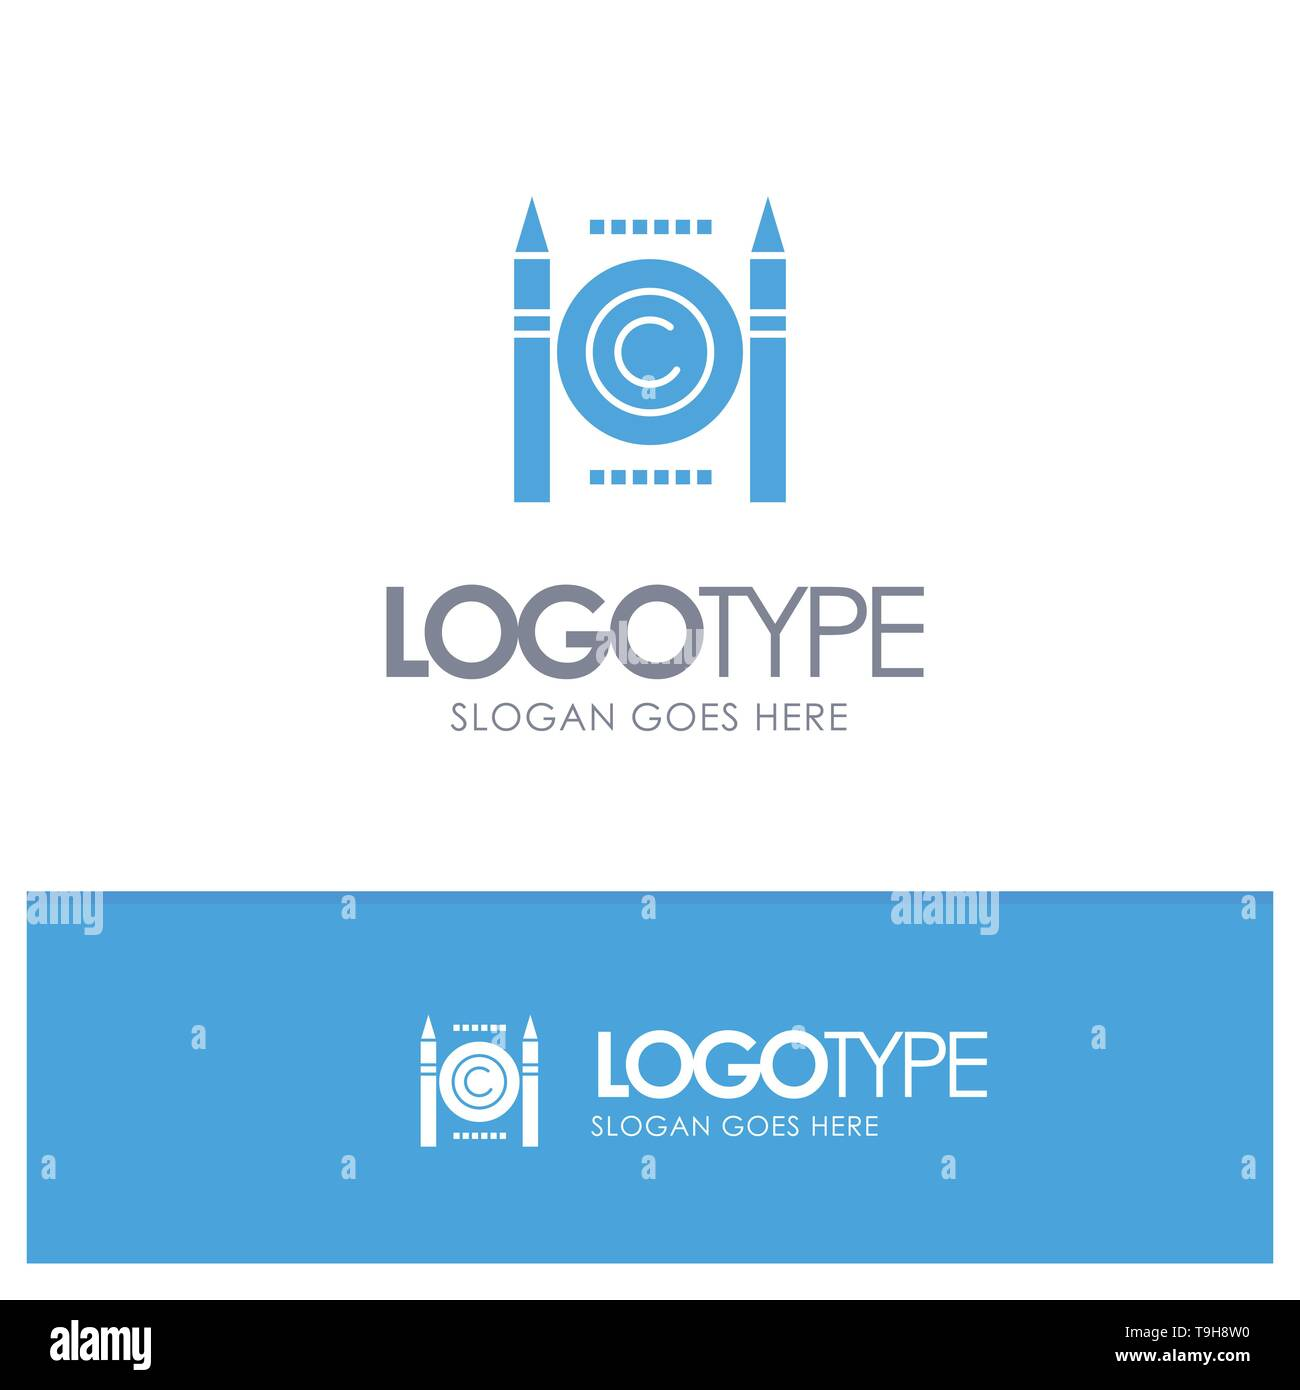 Business, Conflict, Copyright, Digital Blue Solid Logo with place for tagline - Stock Image